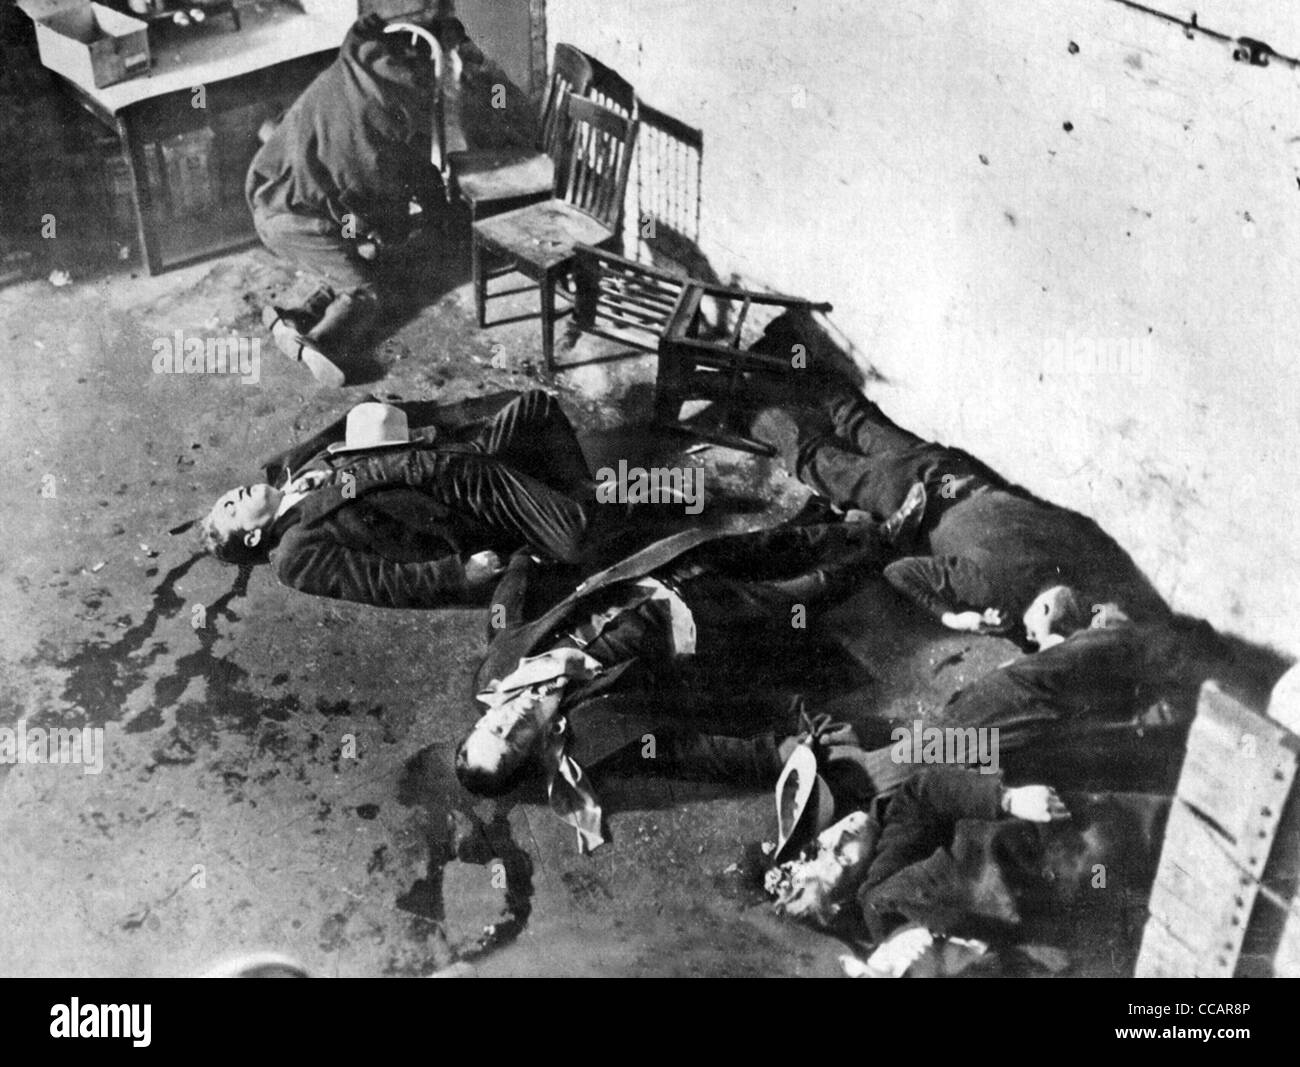 ST VALENTINE'S DAY MASSACRE 14 February 1929 when Al Capone's gang killed members of Irish gang led by Bugs - Stock Image